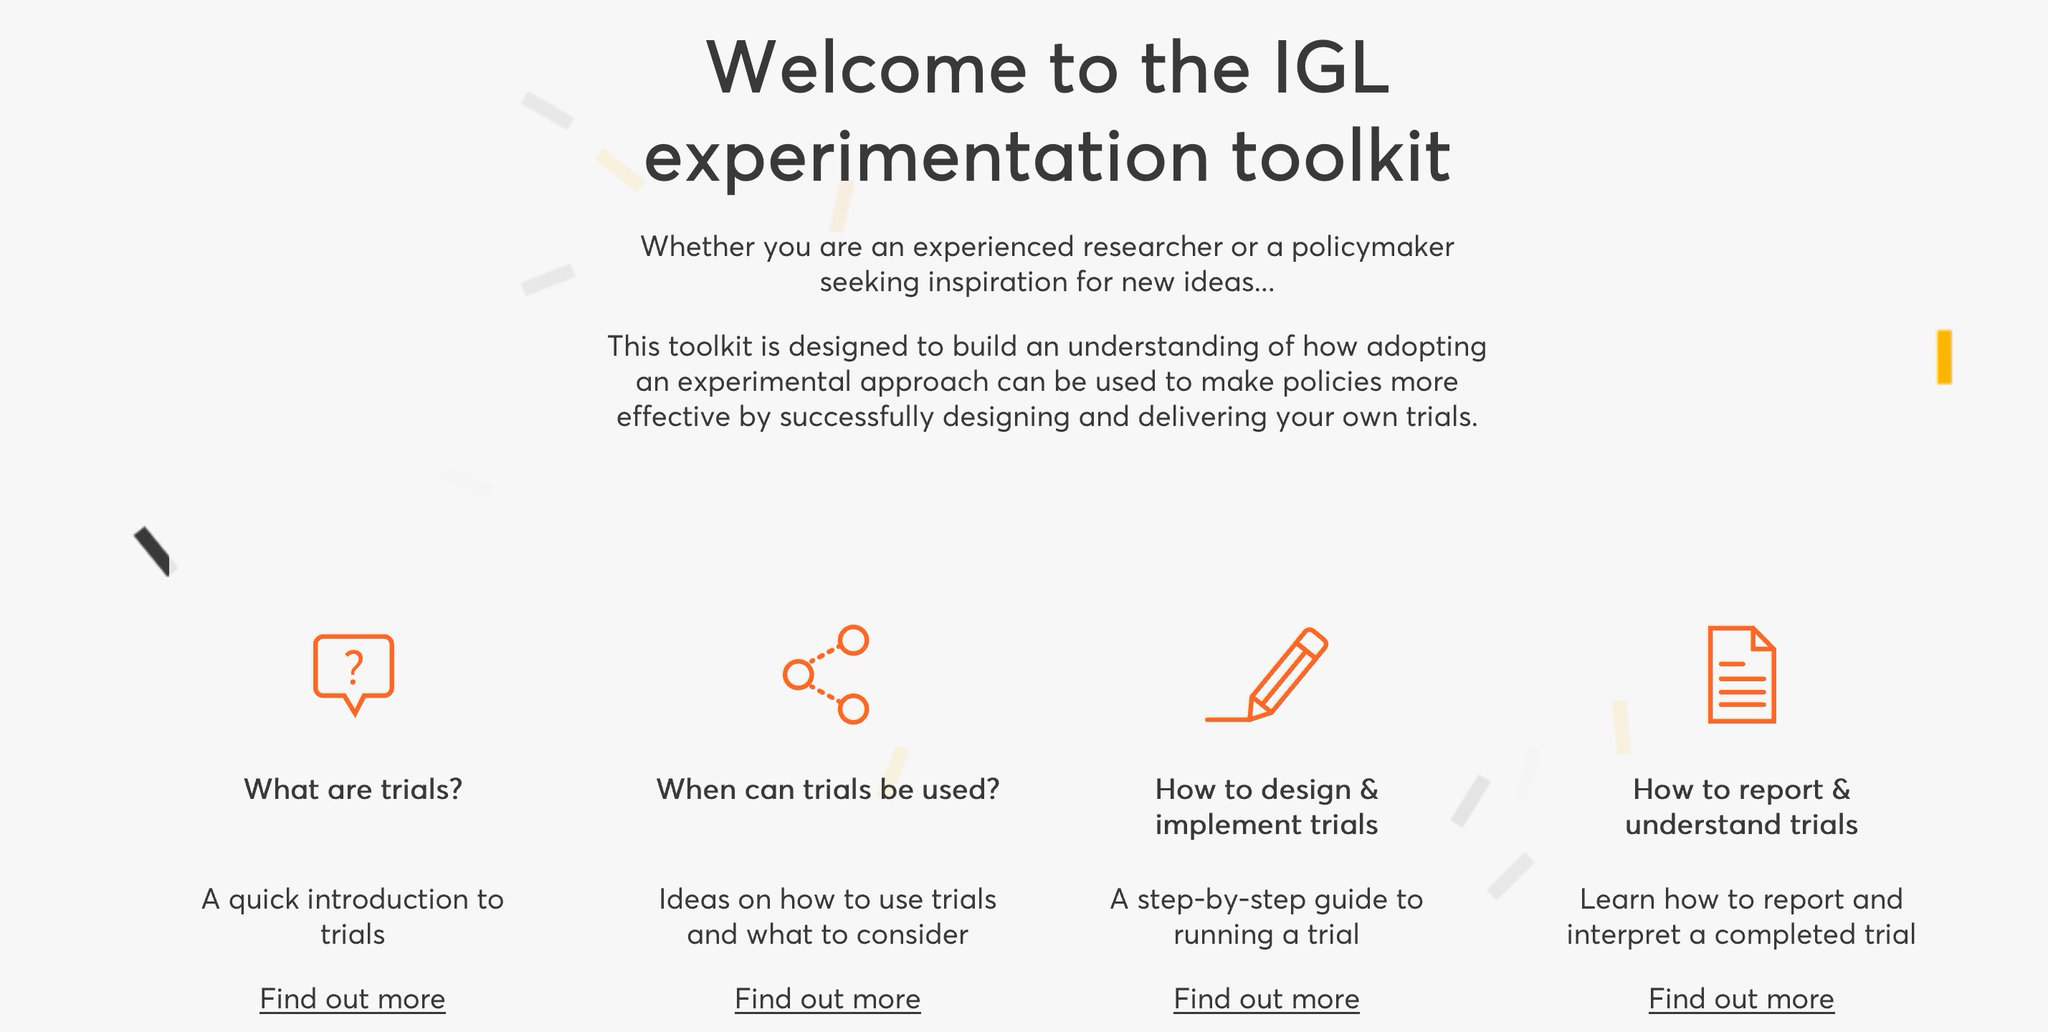 Experimentation tool kit is now live! Check out top tips on how an experimental approach improves policies #IGL2017 https://t.co/unKbjrz3Vk https://t.co/cpNzFFoNI8